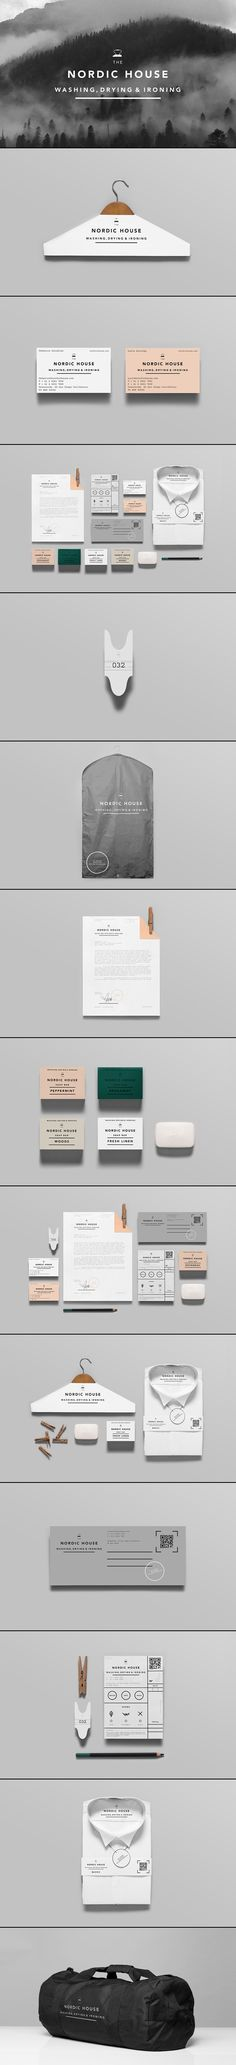 Nordic House corporate design